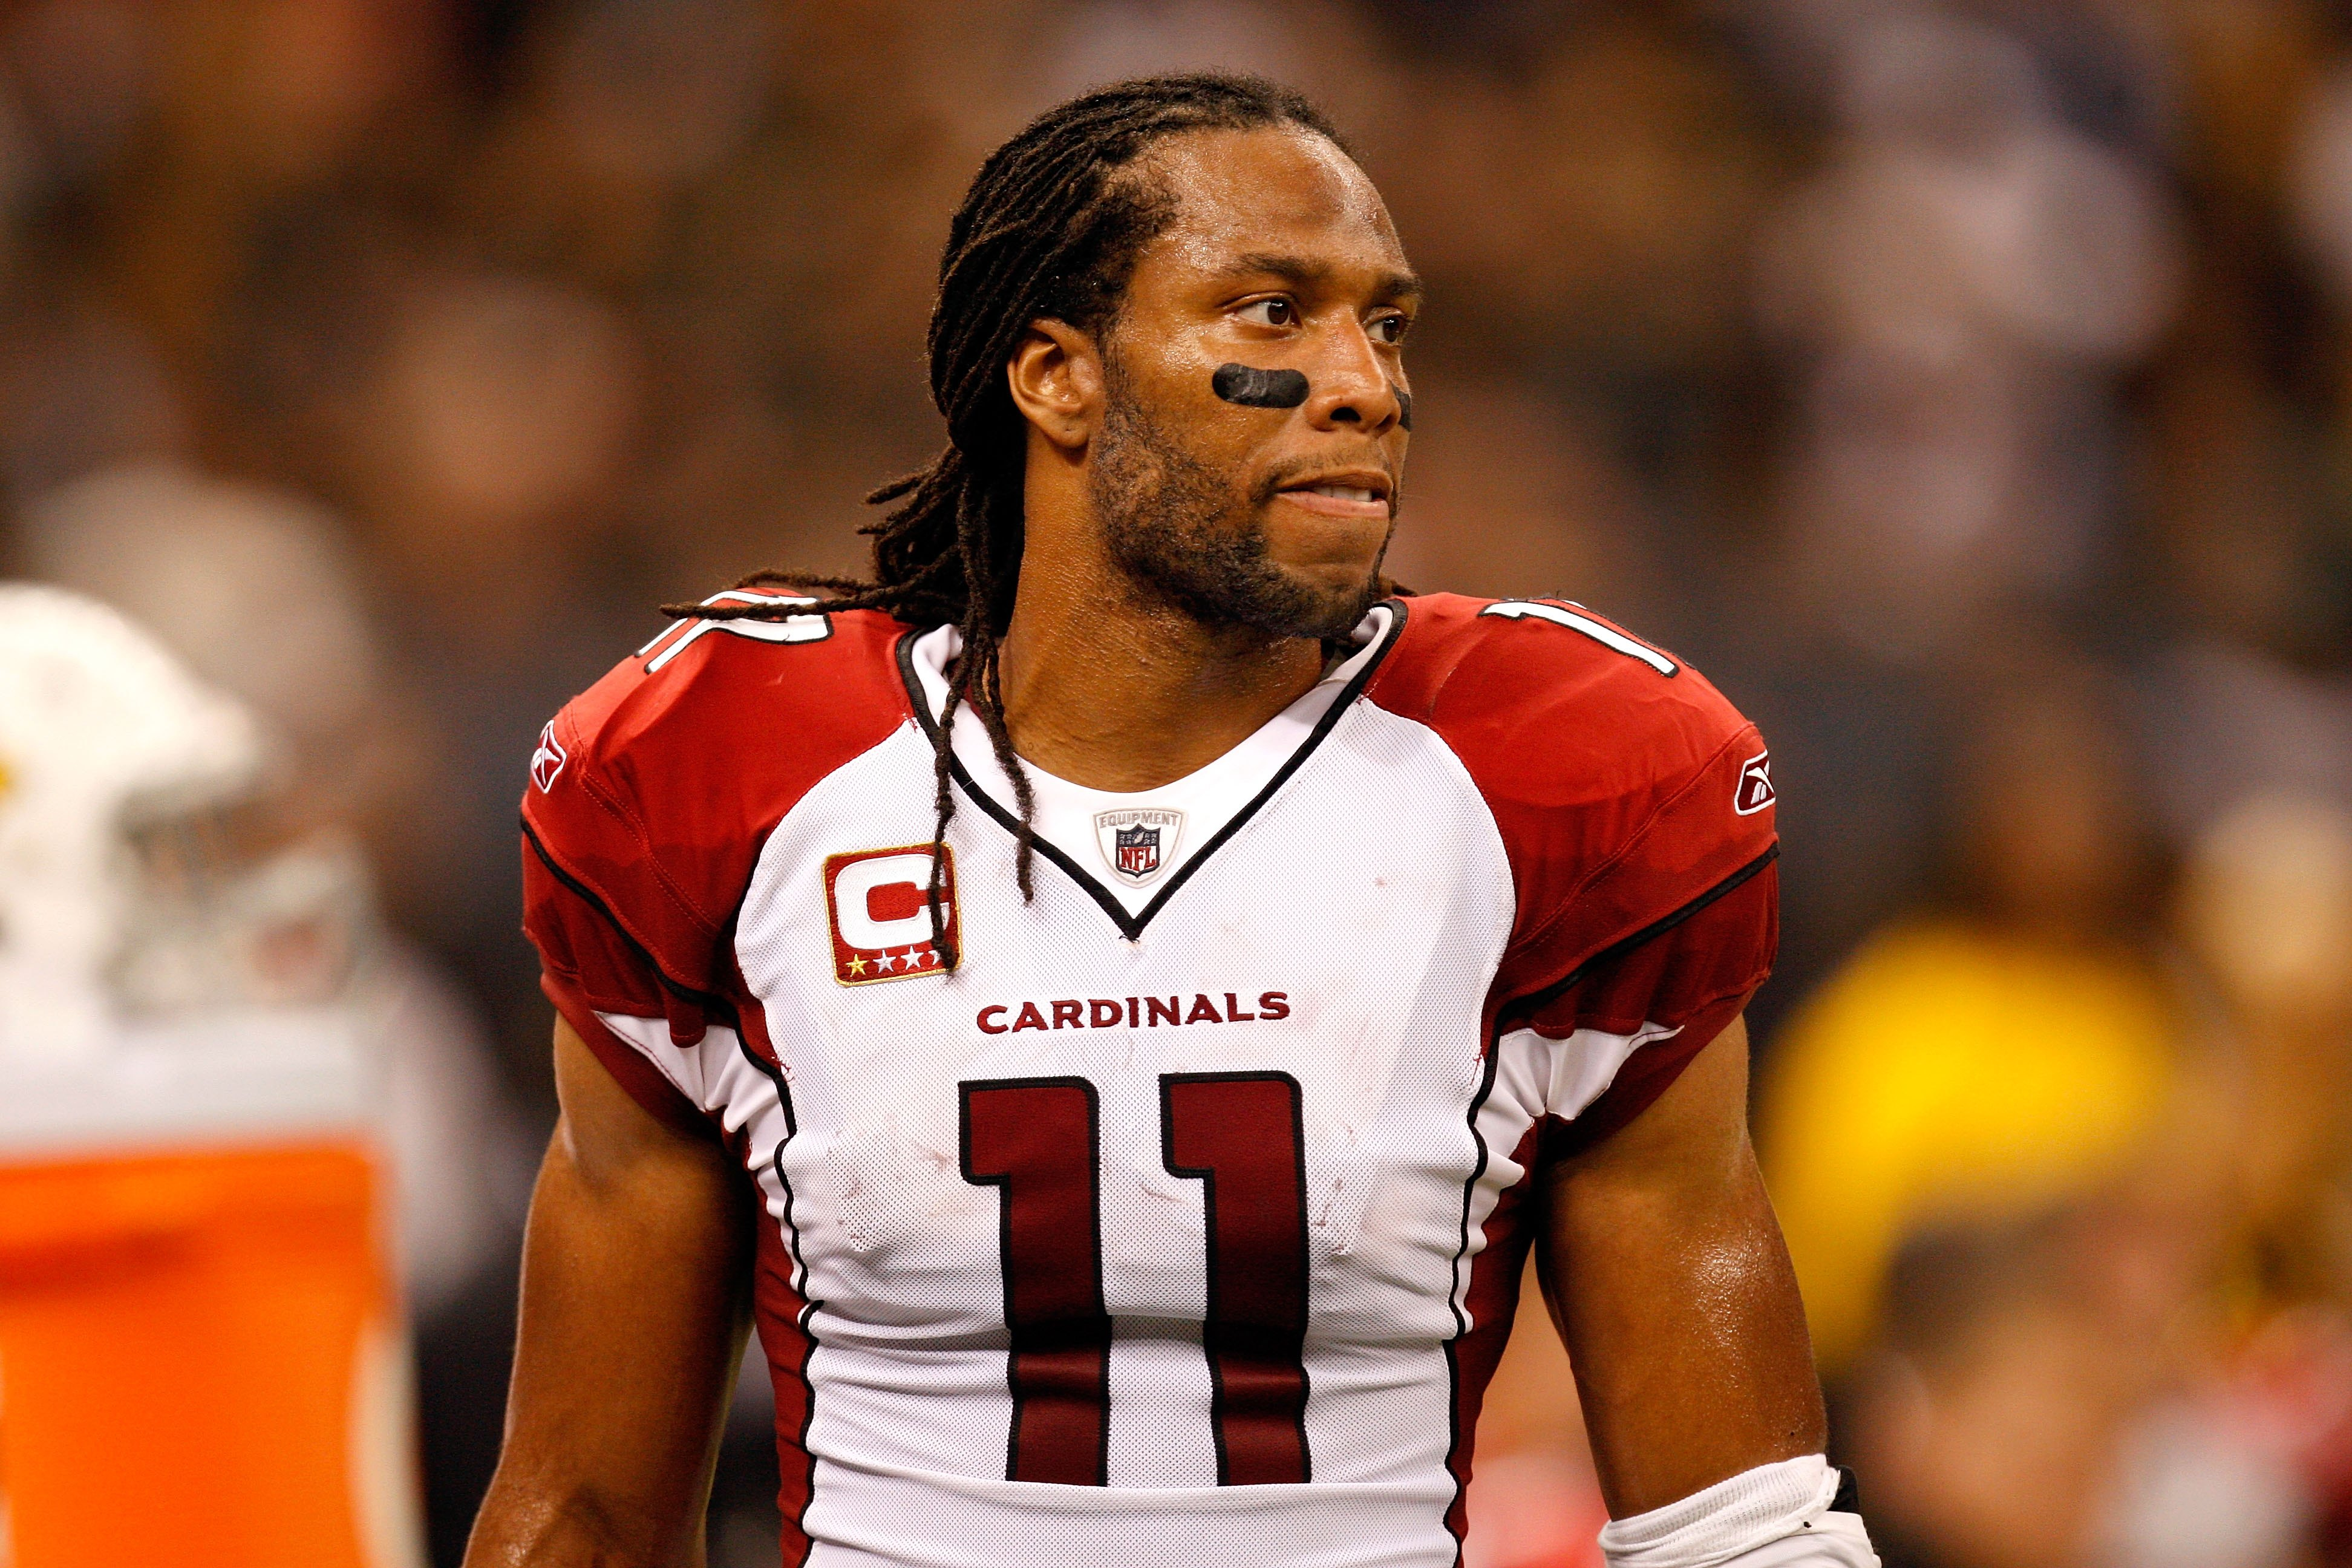 NEW ORLEANS - JANUARY 16:  Larry Fitzgerald #11 of the Arizona Cardinals looks on against the New Orleans Saints during the NFC Divisional Playoff Game at Louisana Superdome on January 16, 2010 in New Orleans, Louisiana. The Saints won 45-14.  (Photo by R